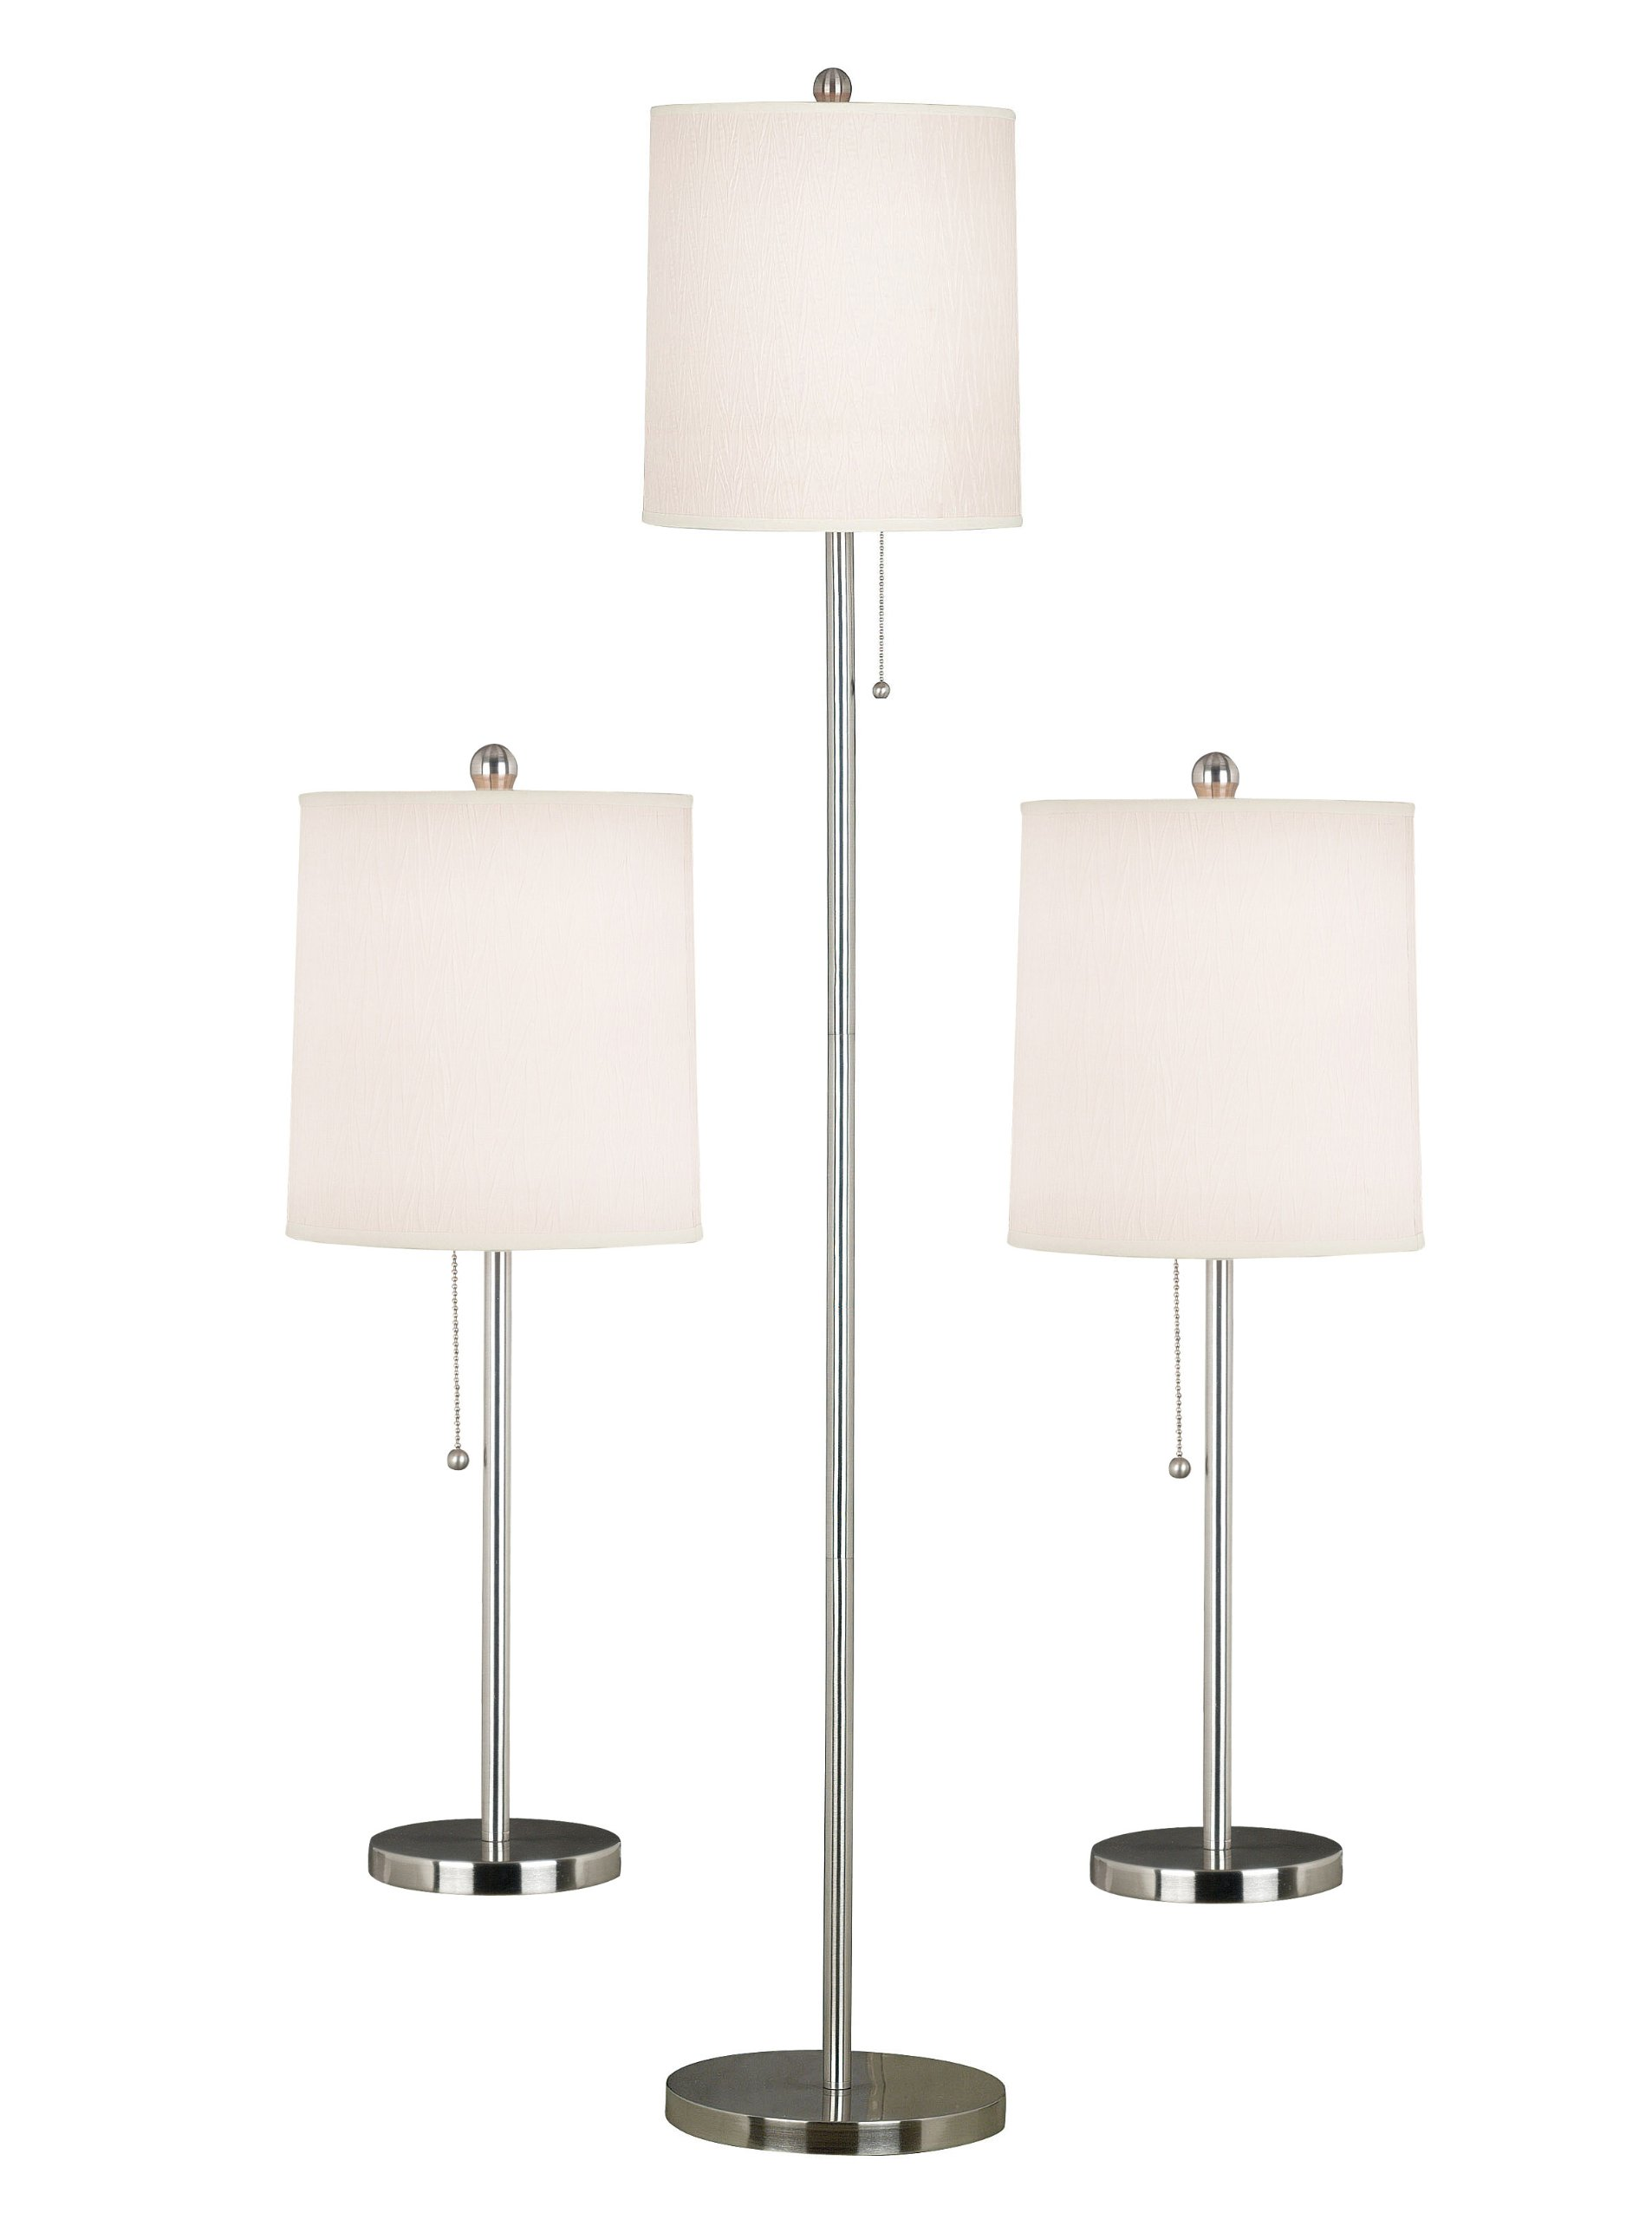 Kenroy Home 21016BS Selma Table and Floor Lamp, 3 Pack, Brushed Steel